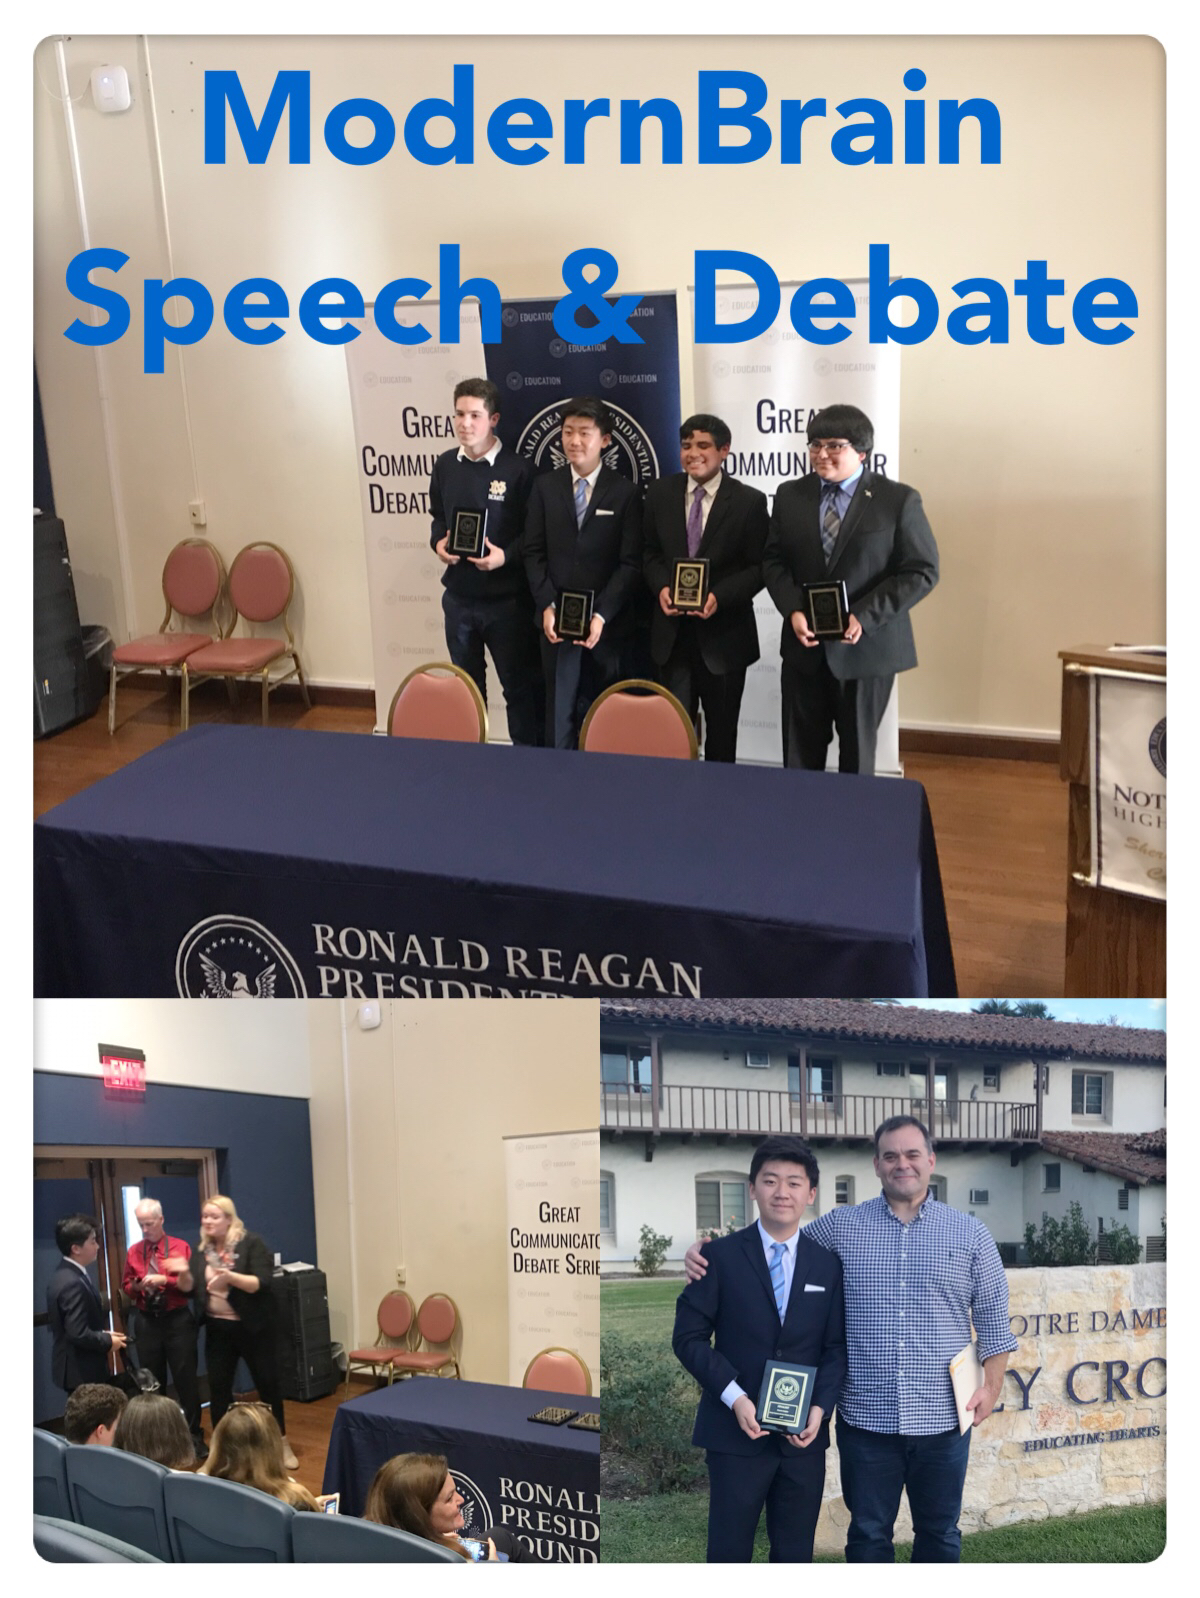 congratulations to our student Brandon Pae at Pacific Academy who competed at the the Ronald Reagan Presidential foundation Great Communicator Debate series. In his first attempt at a new style of Debate, he competed at a national level tournament, was a finalist, and qualified for a $3000 scholarship and a study in Washington DC program!